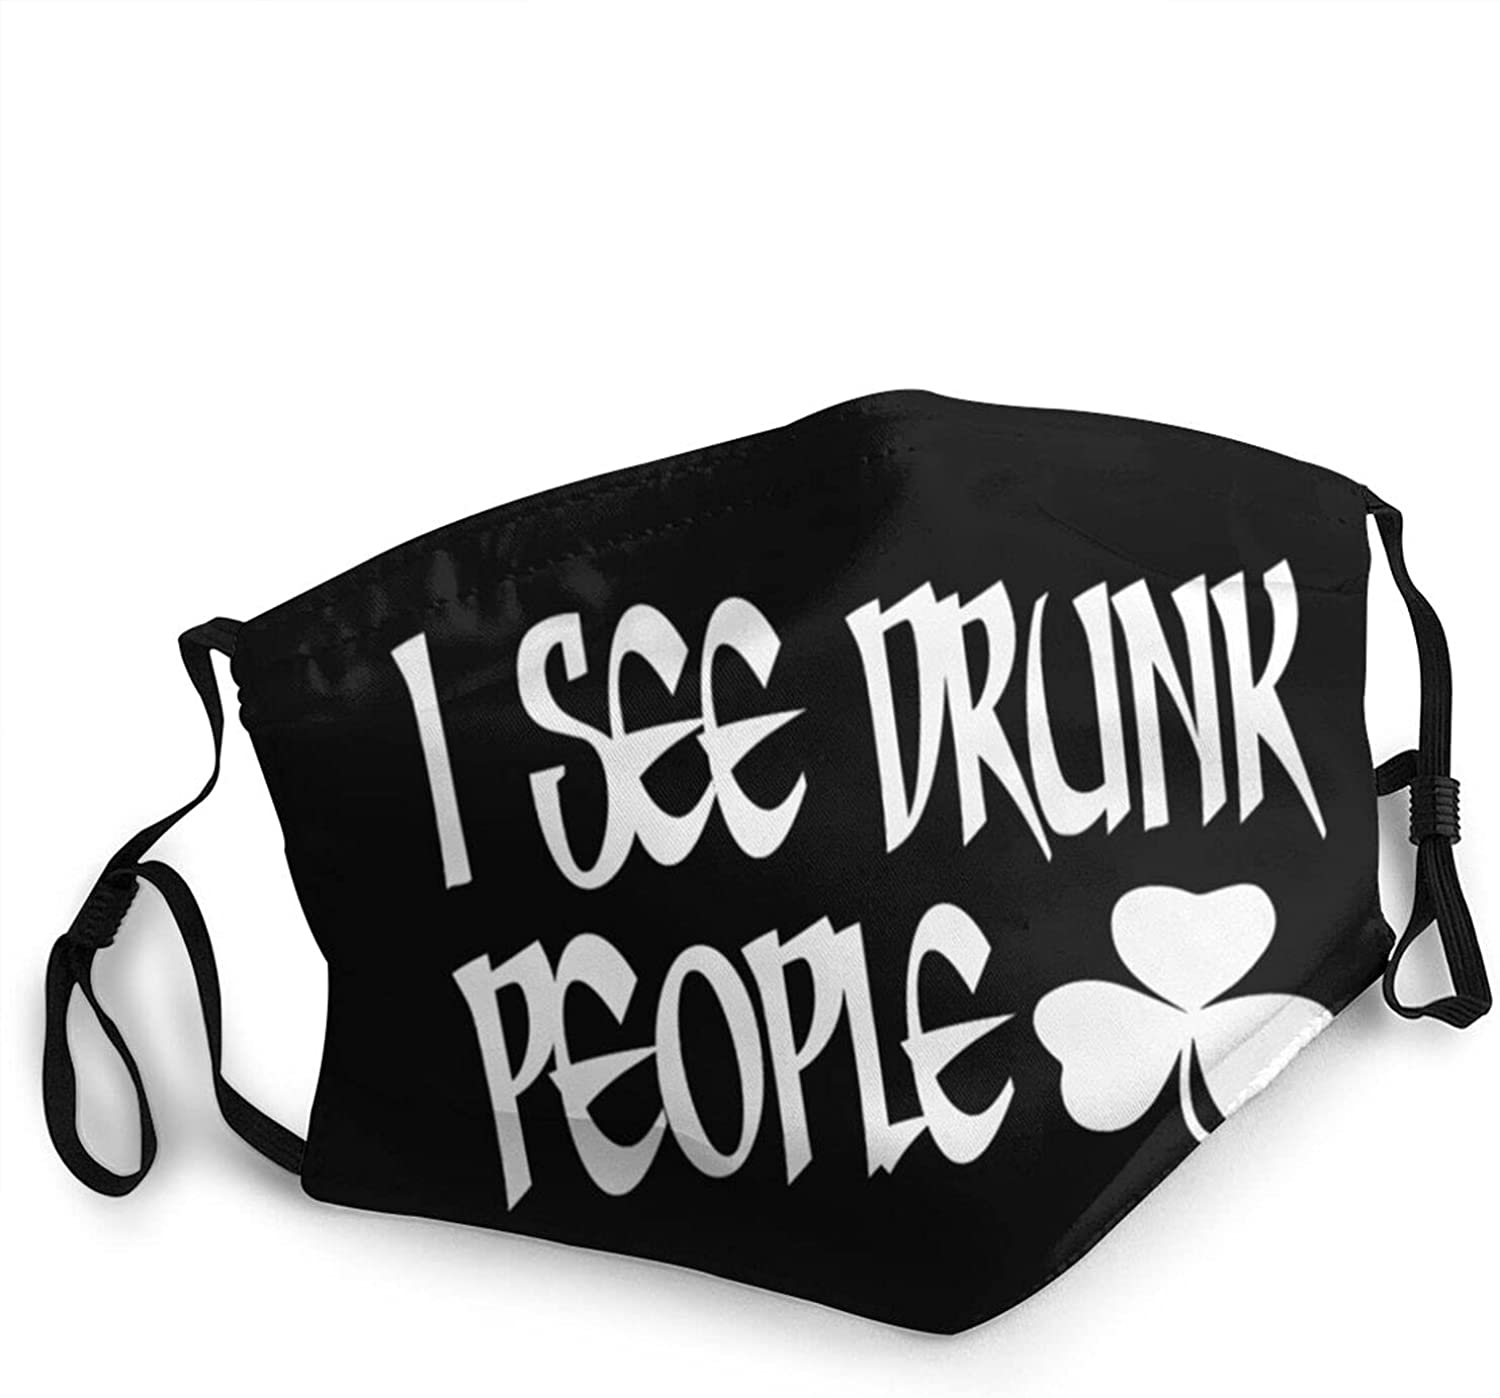 CURANI I Outlet sale feature Opening large release sale See Drunk People 2 Bandana with Face Mask Reusable Mout